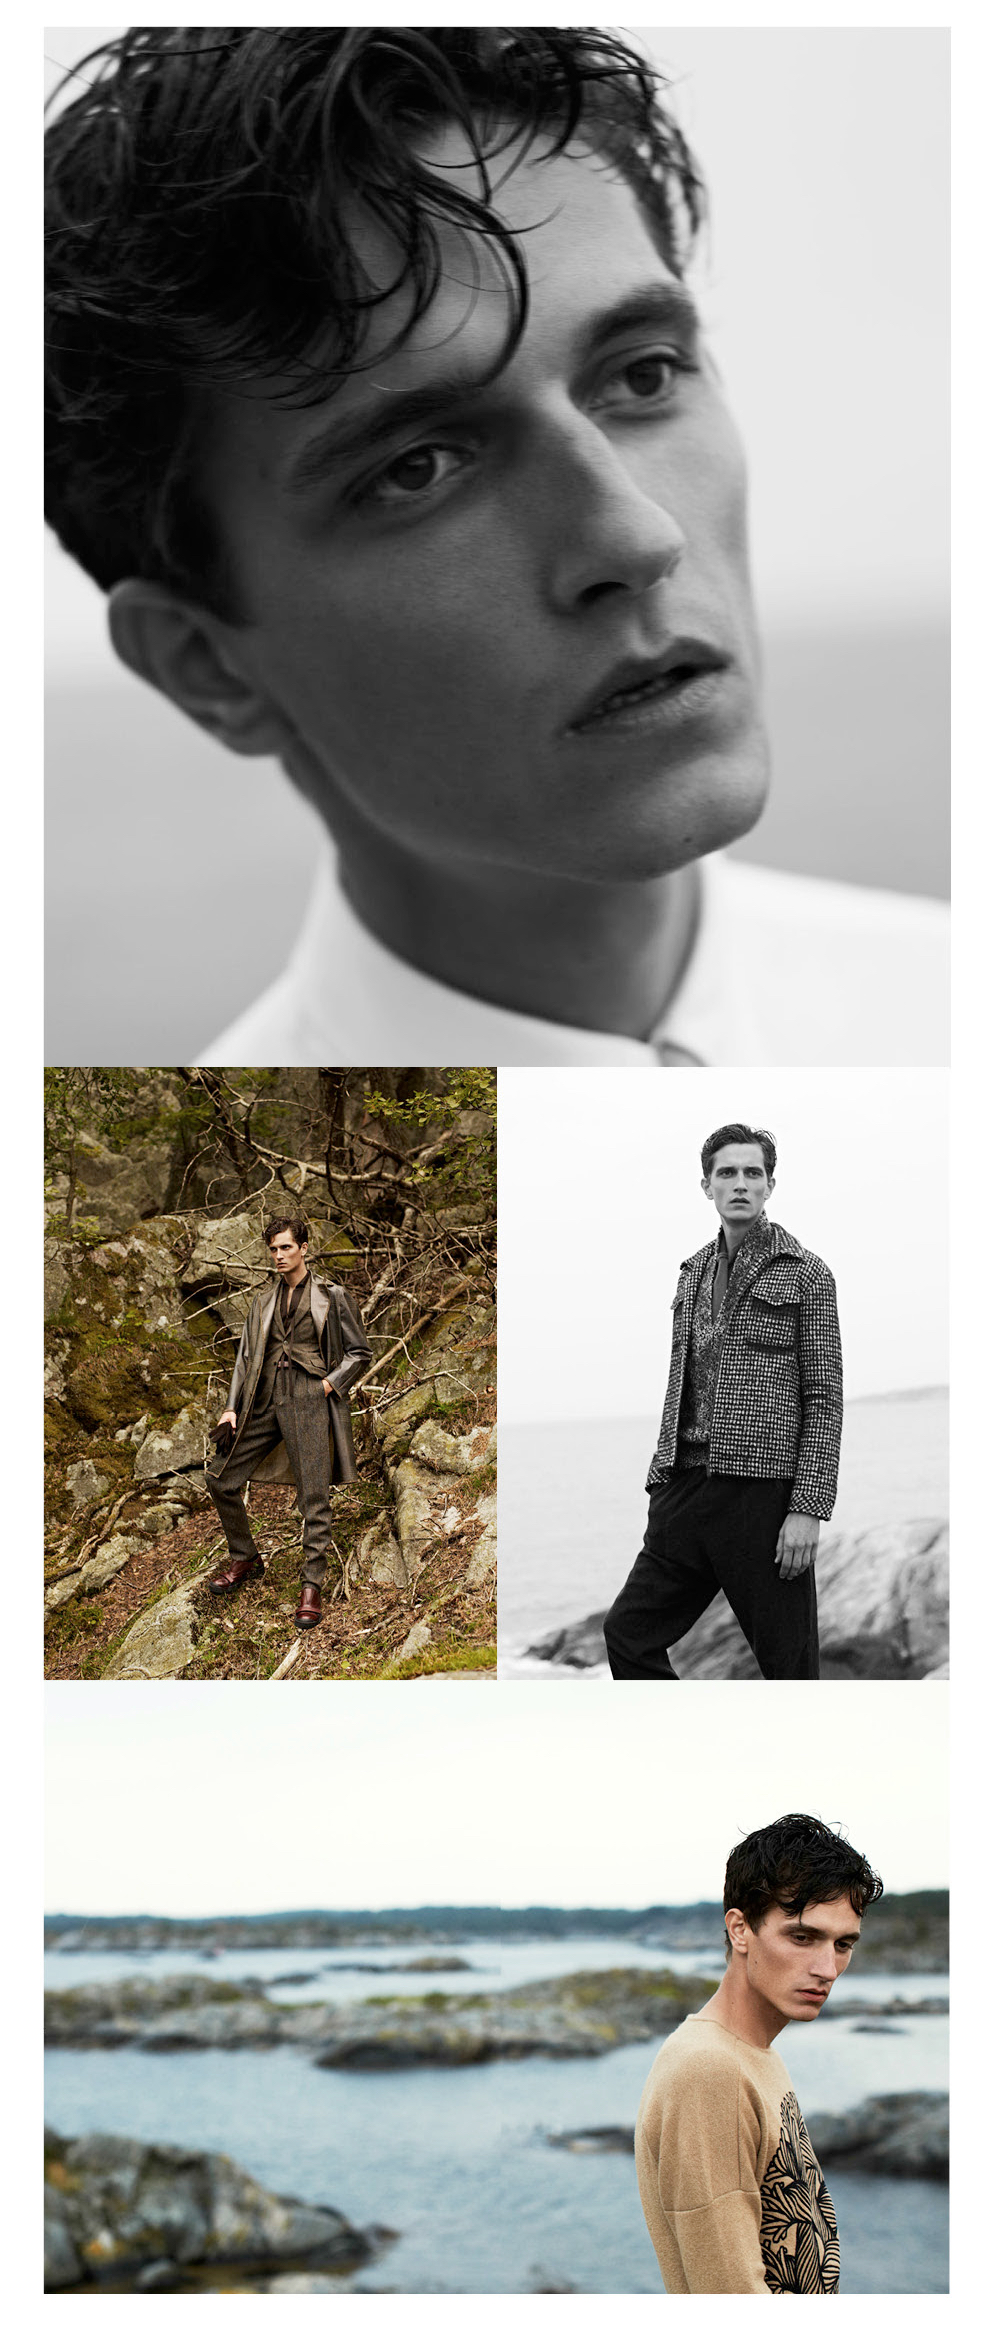 Jakob Wiechmann is Serene for Bolero Men Fashion Editorial